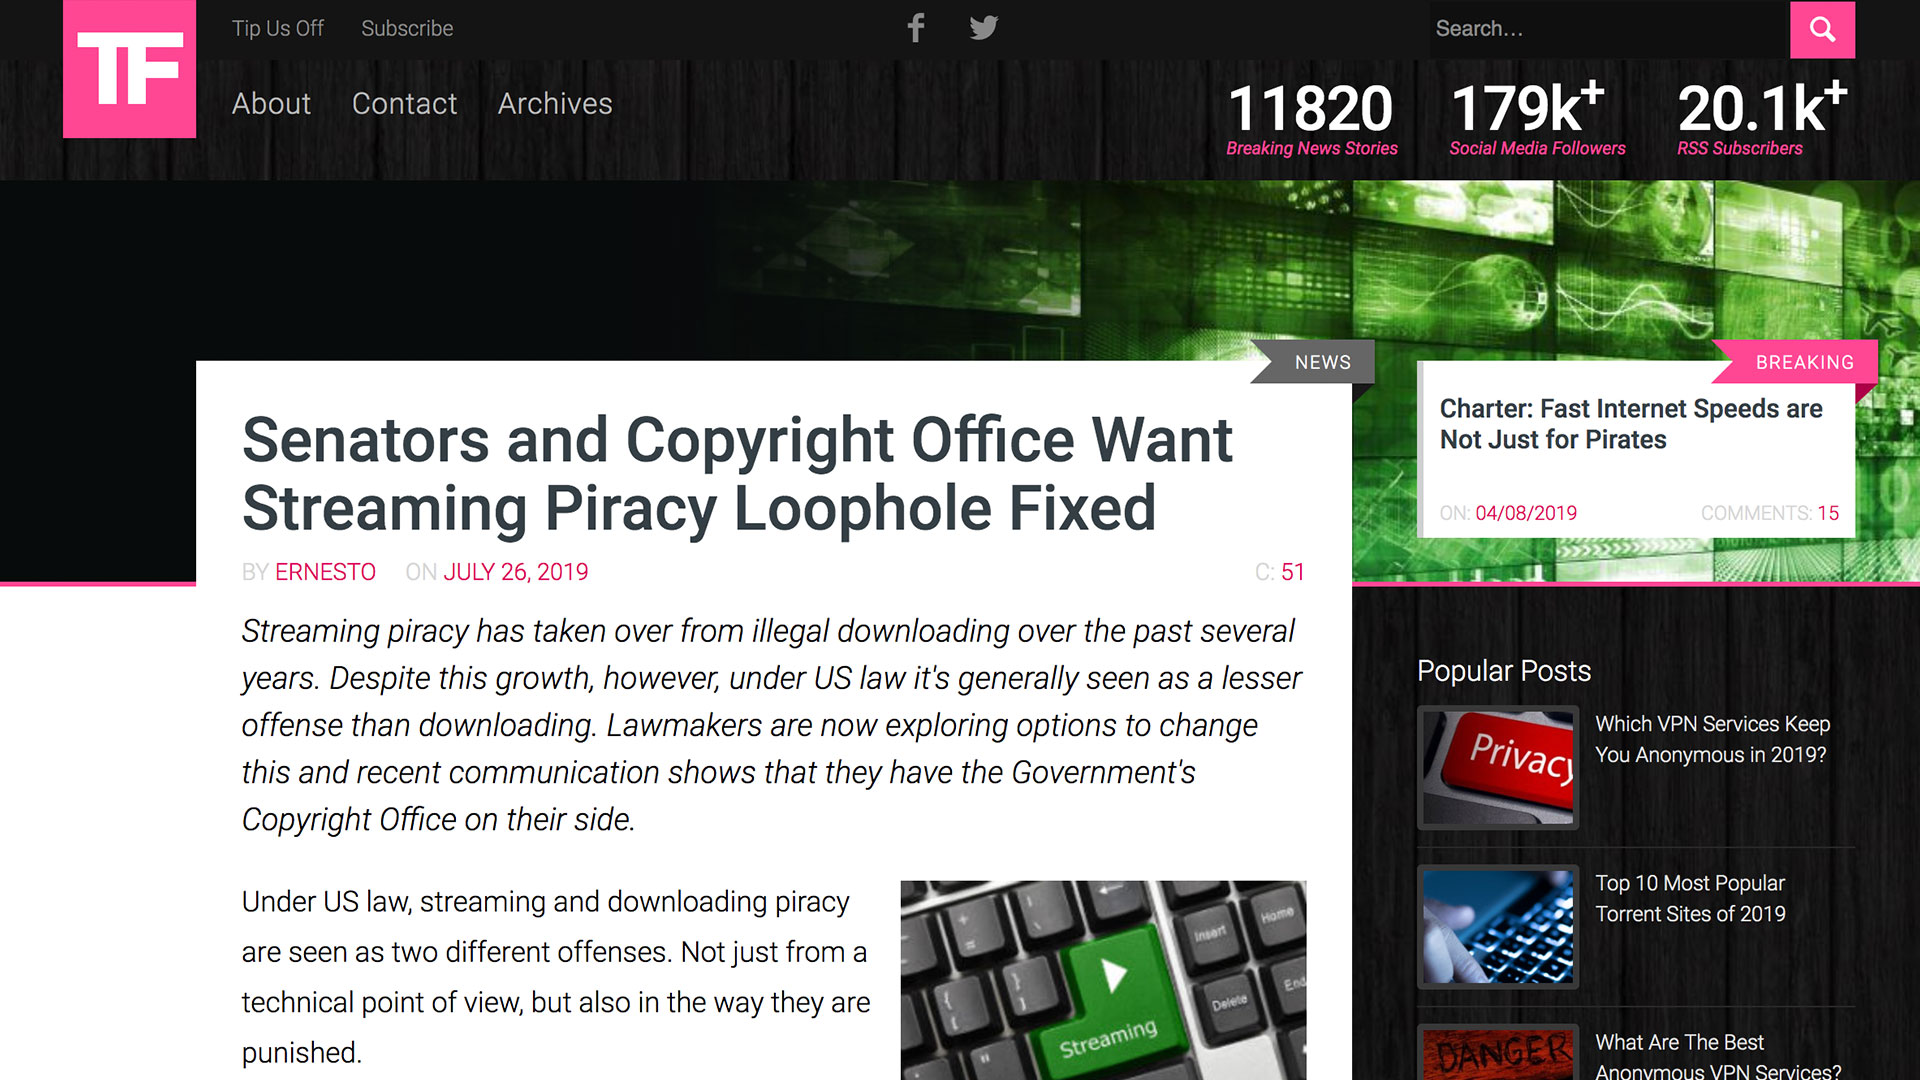 Fairness Rocks News Senators and Copyright Office Want Streaming Piracy Loophole Fixed